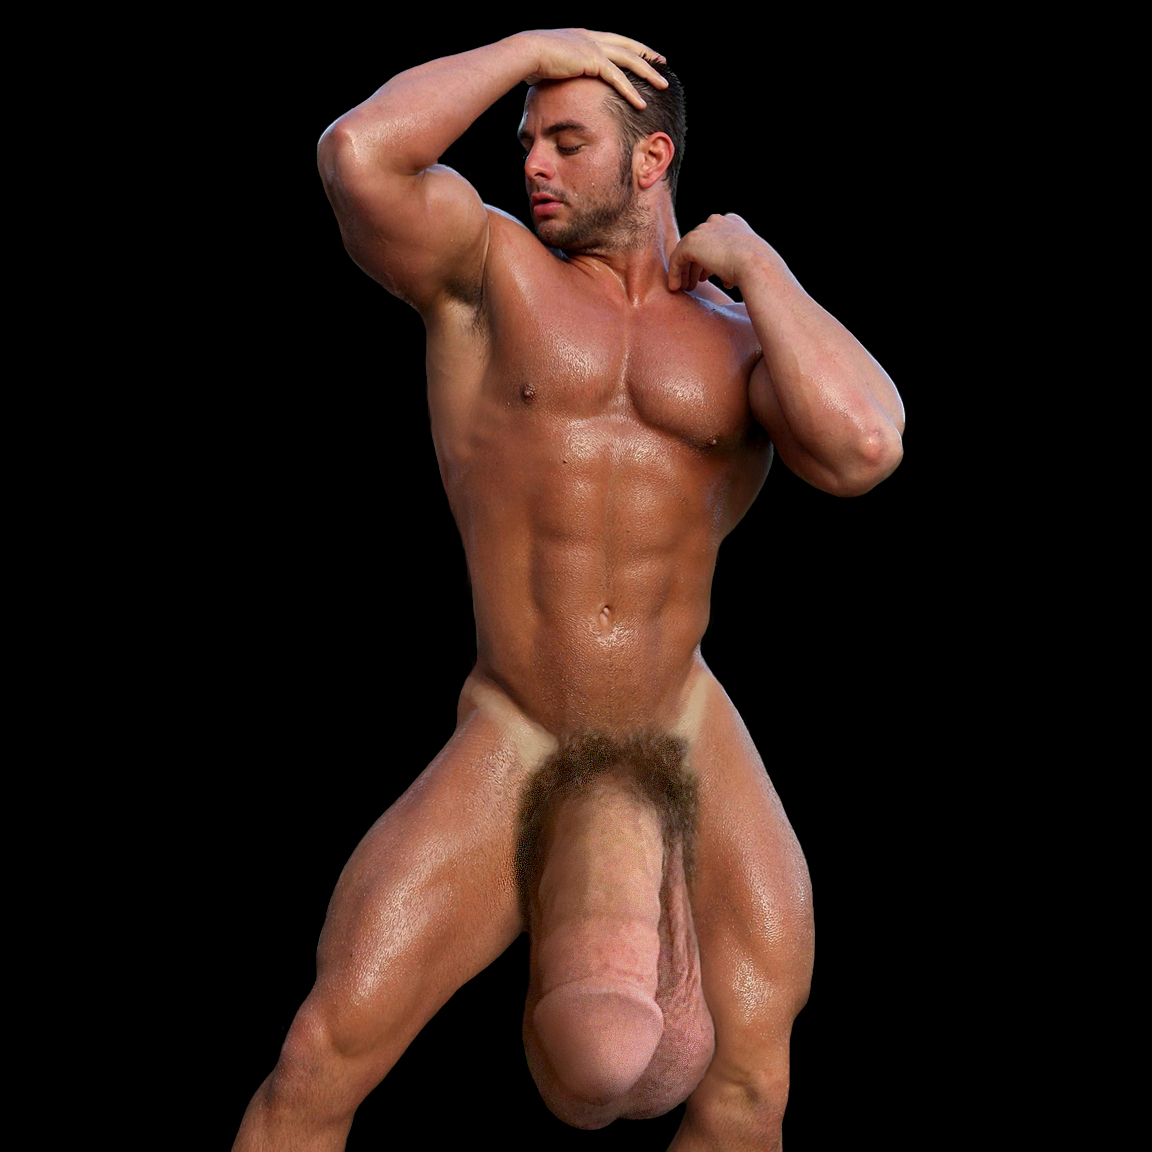 Naked massive dick showing off